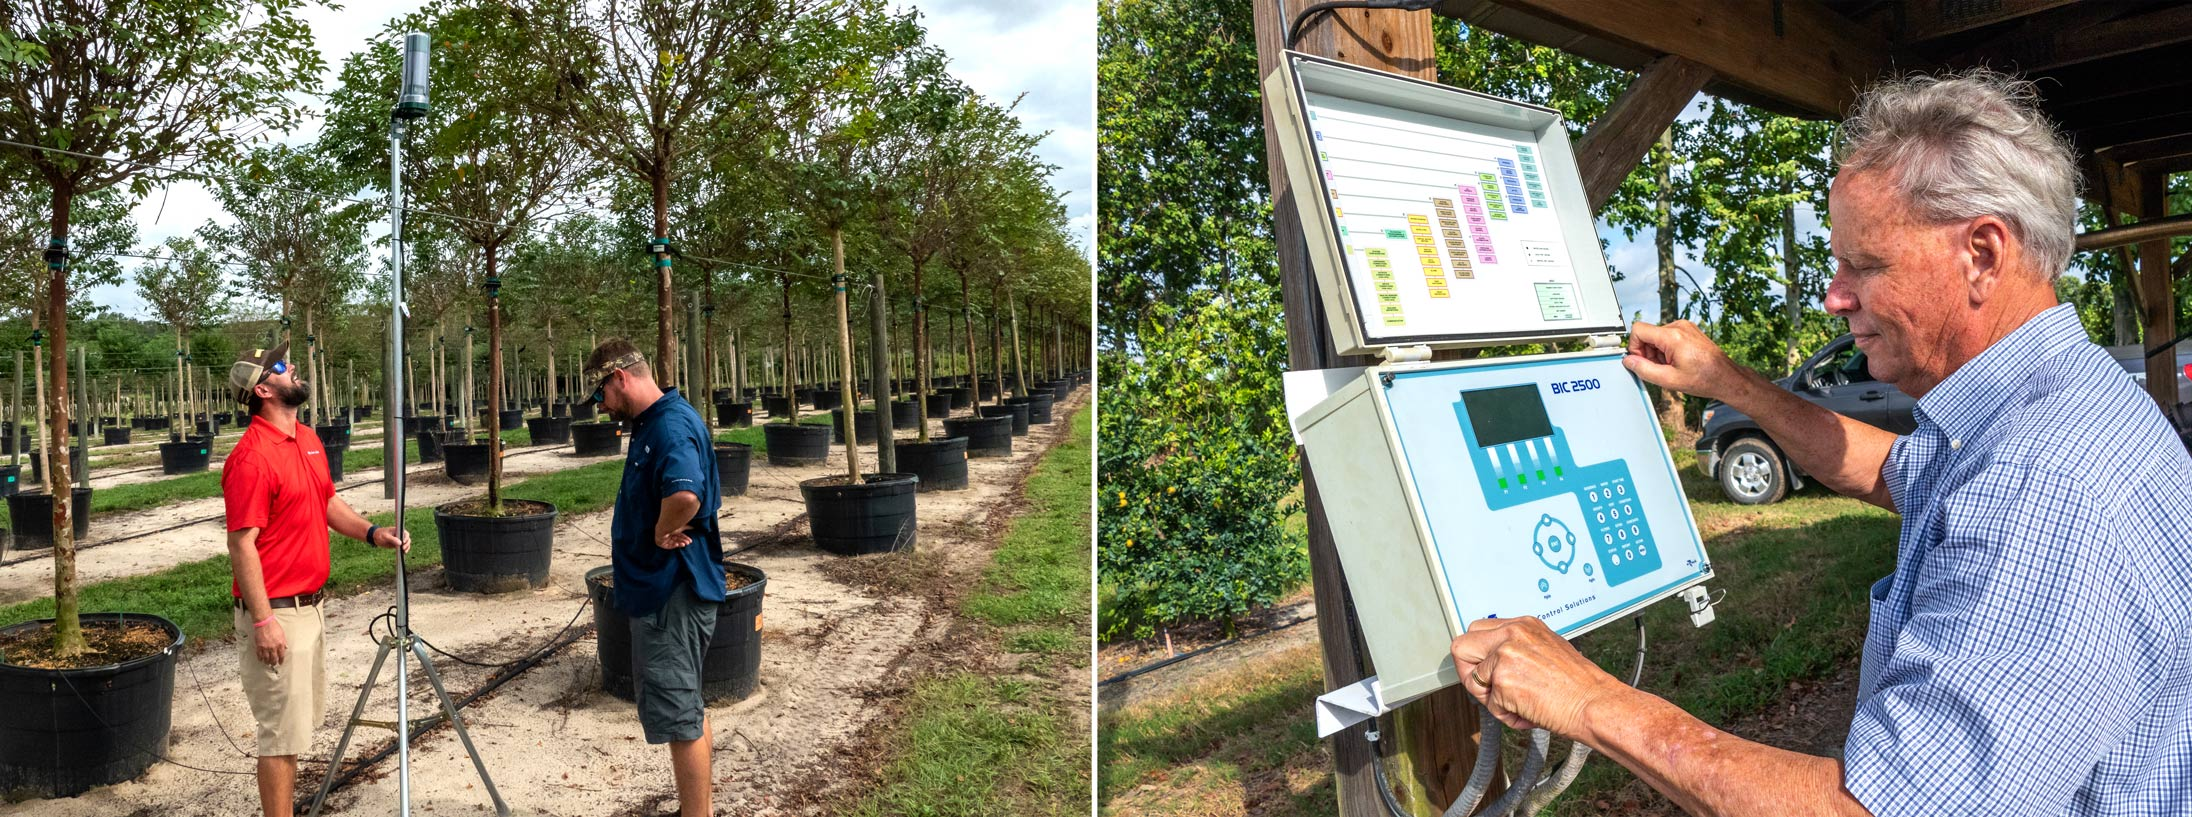 Todd Gentry, left, and Austin Spivey of Cherrylake in Groveland monitor irrigation and fertilization equipment at the ornamental tree farm. At right, Indian River County citrus grower Cody Estes monitors a weather station at his grove.